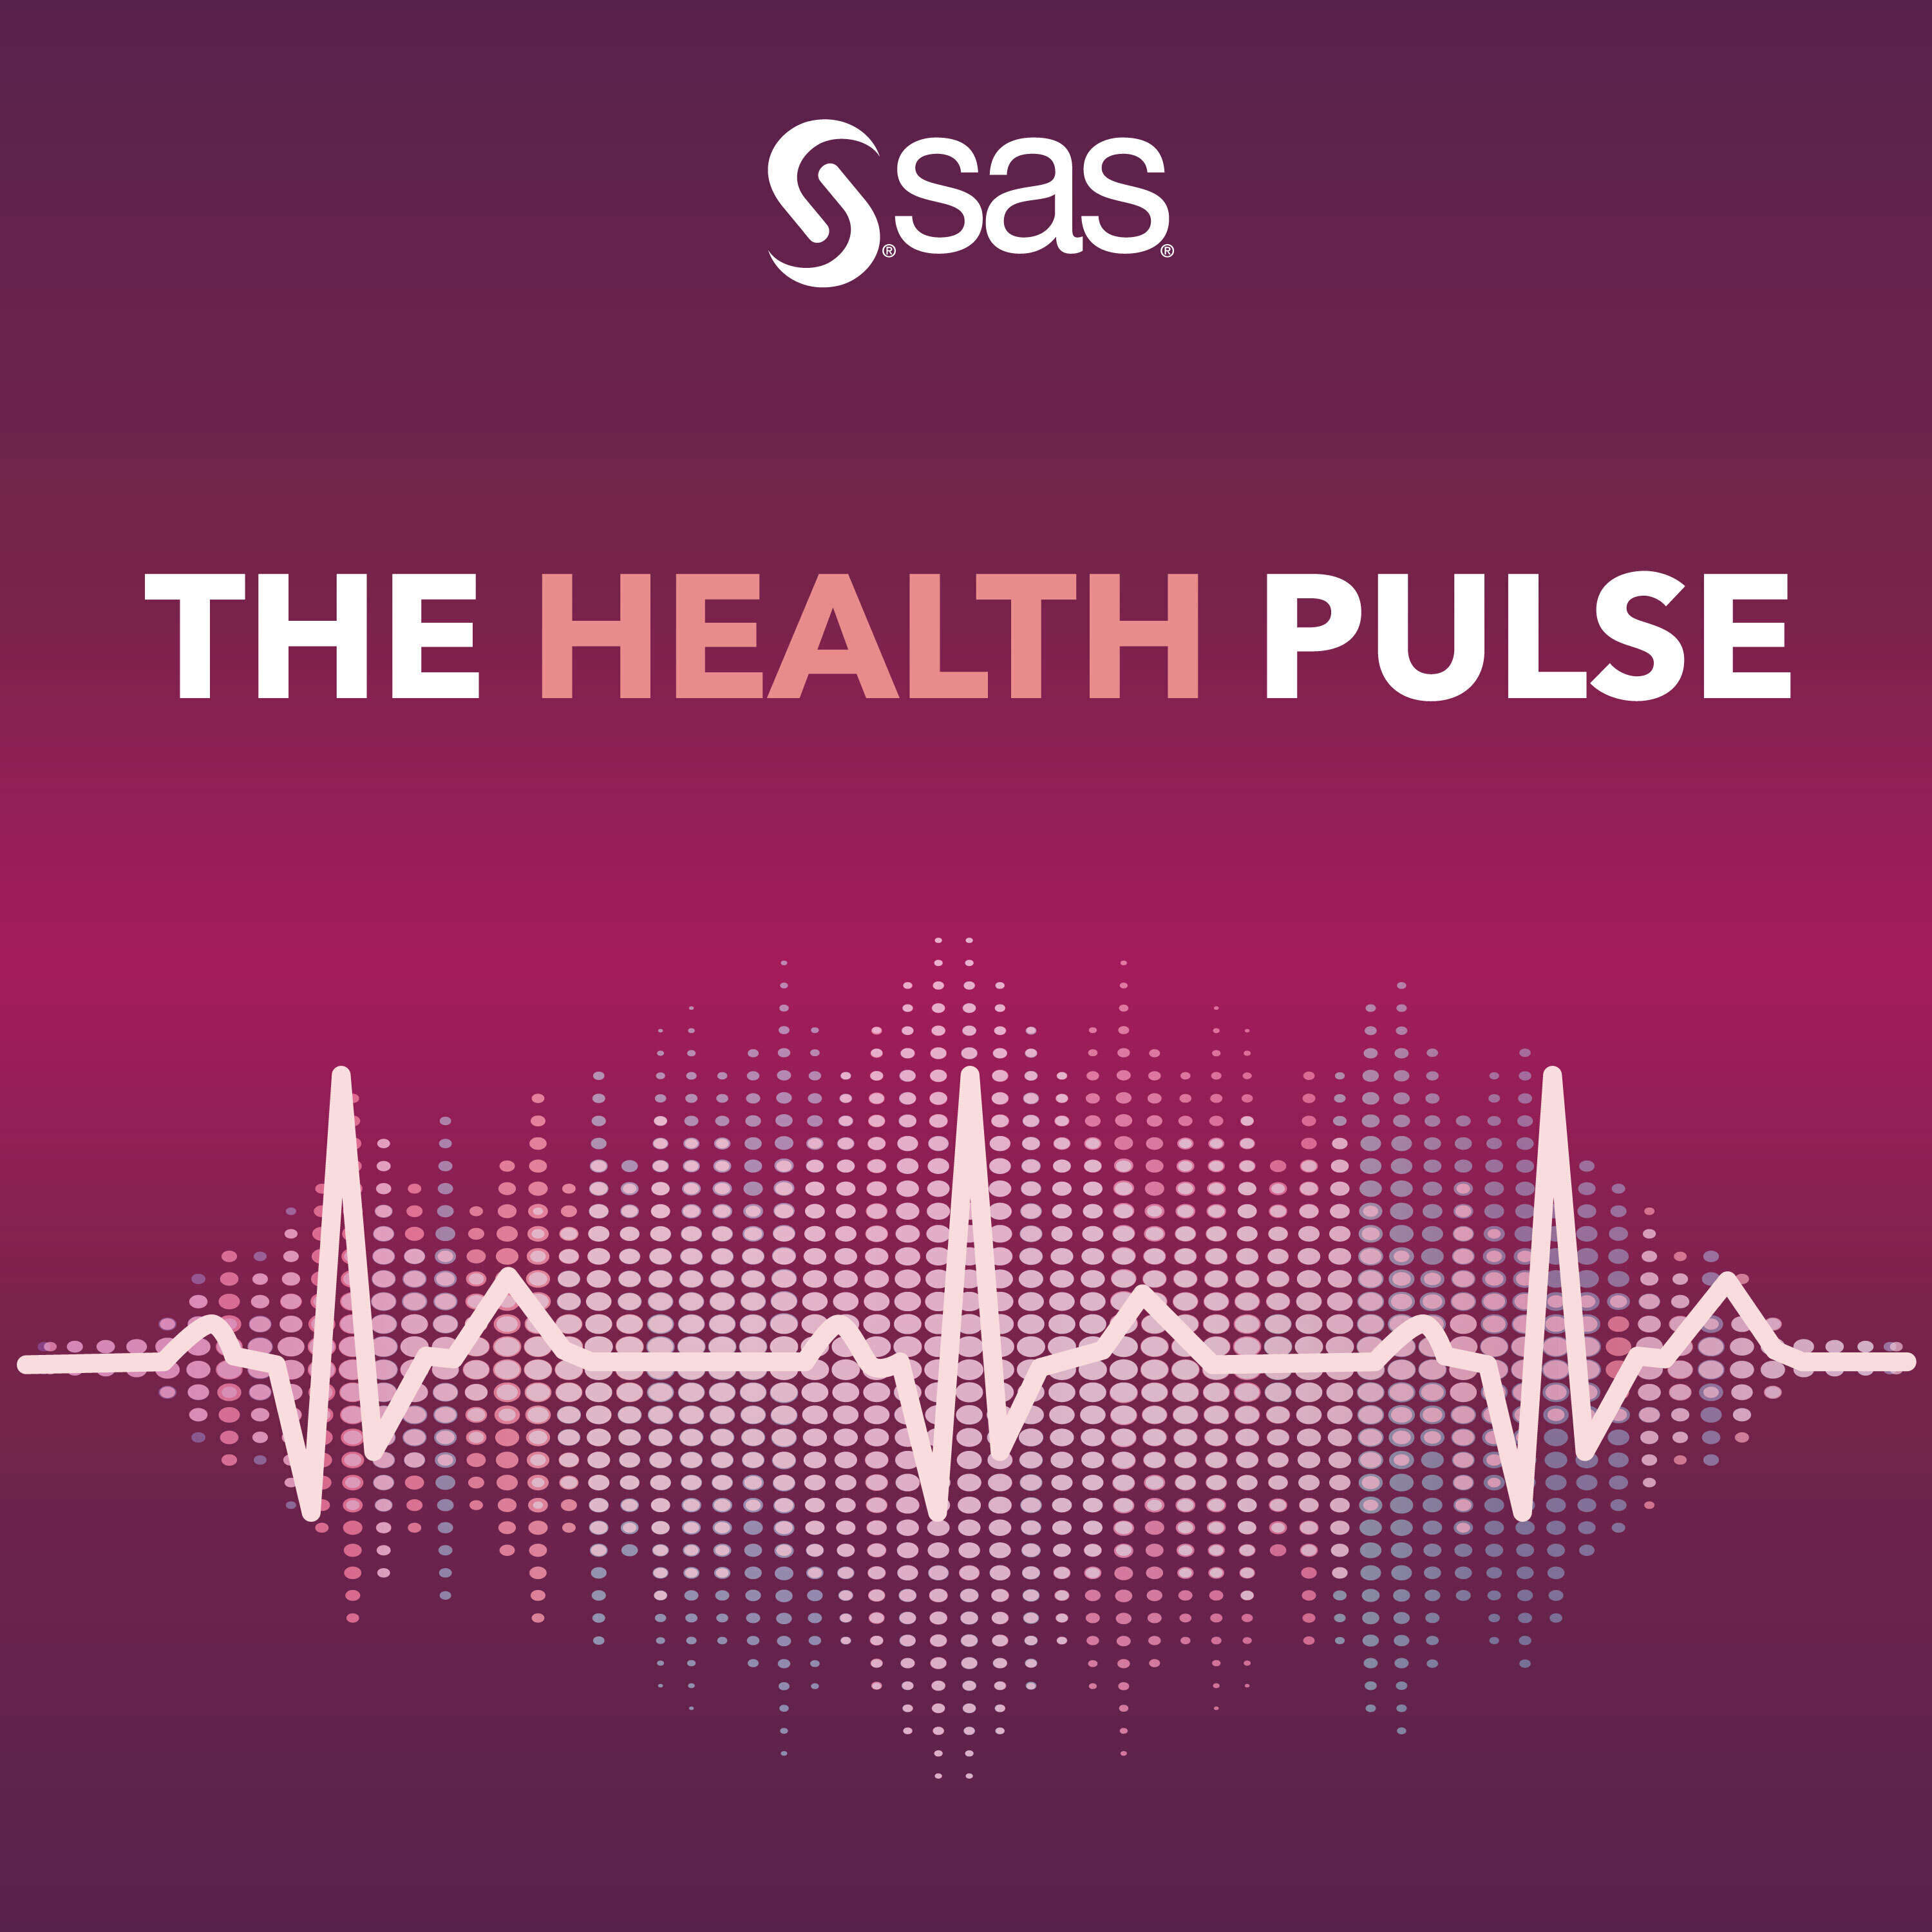 The Health Pulse: In life sciences, change is hard but worth it when it comes to digital transformation.